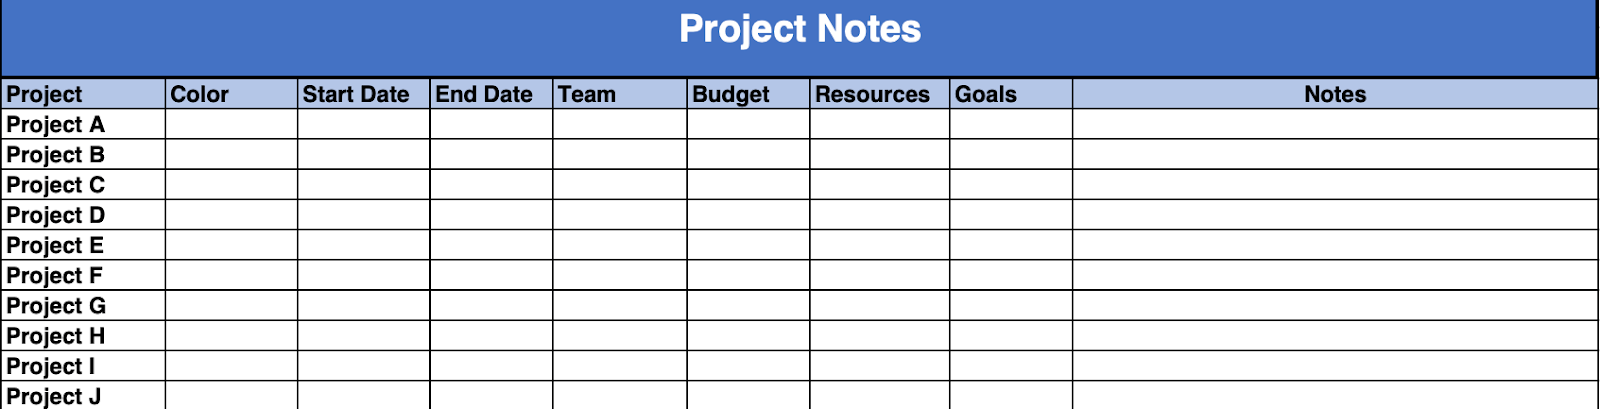 Blank project notes template